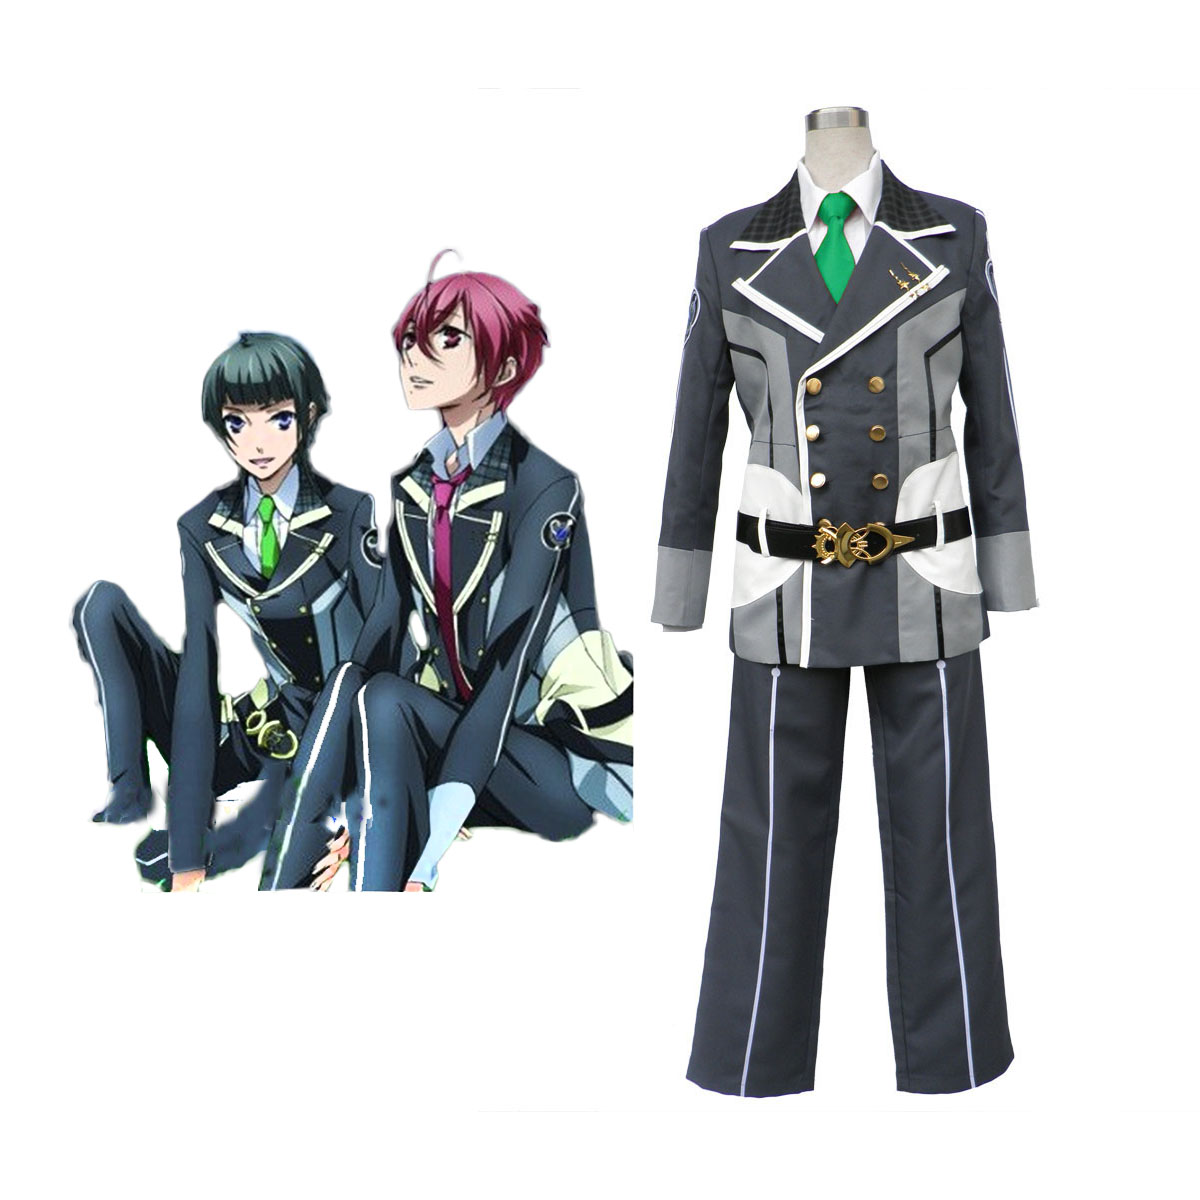 Starry Sky Male Winter School Uniform 2 Cosplay Costumes AU